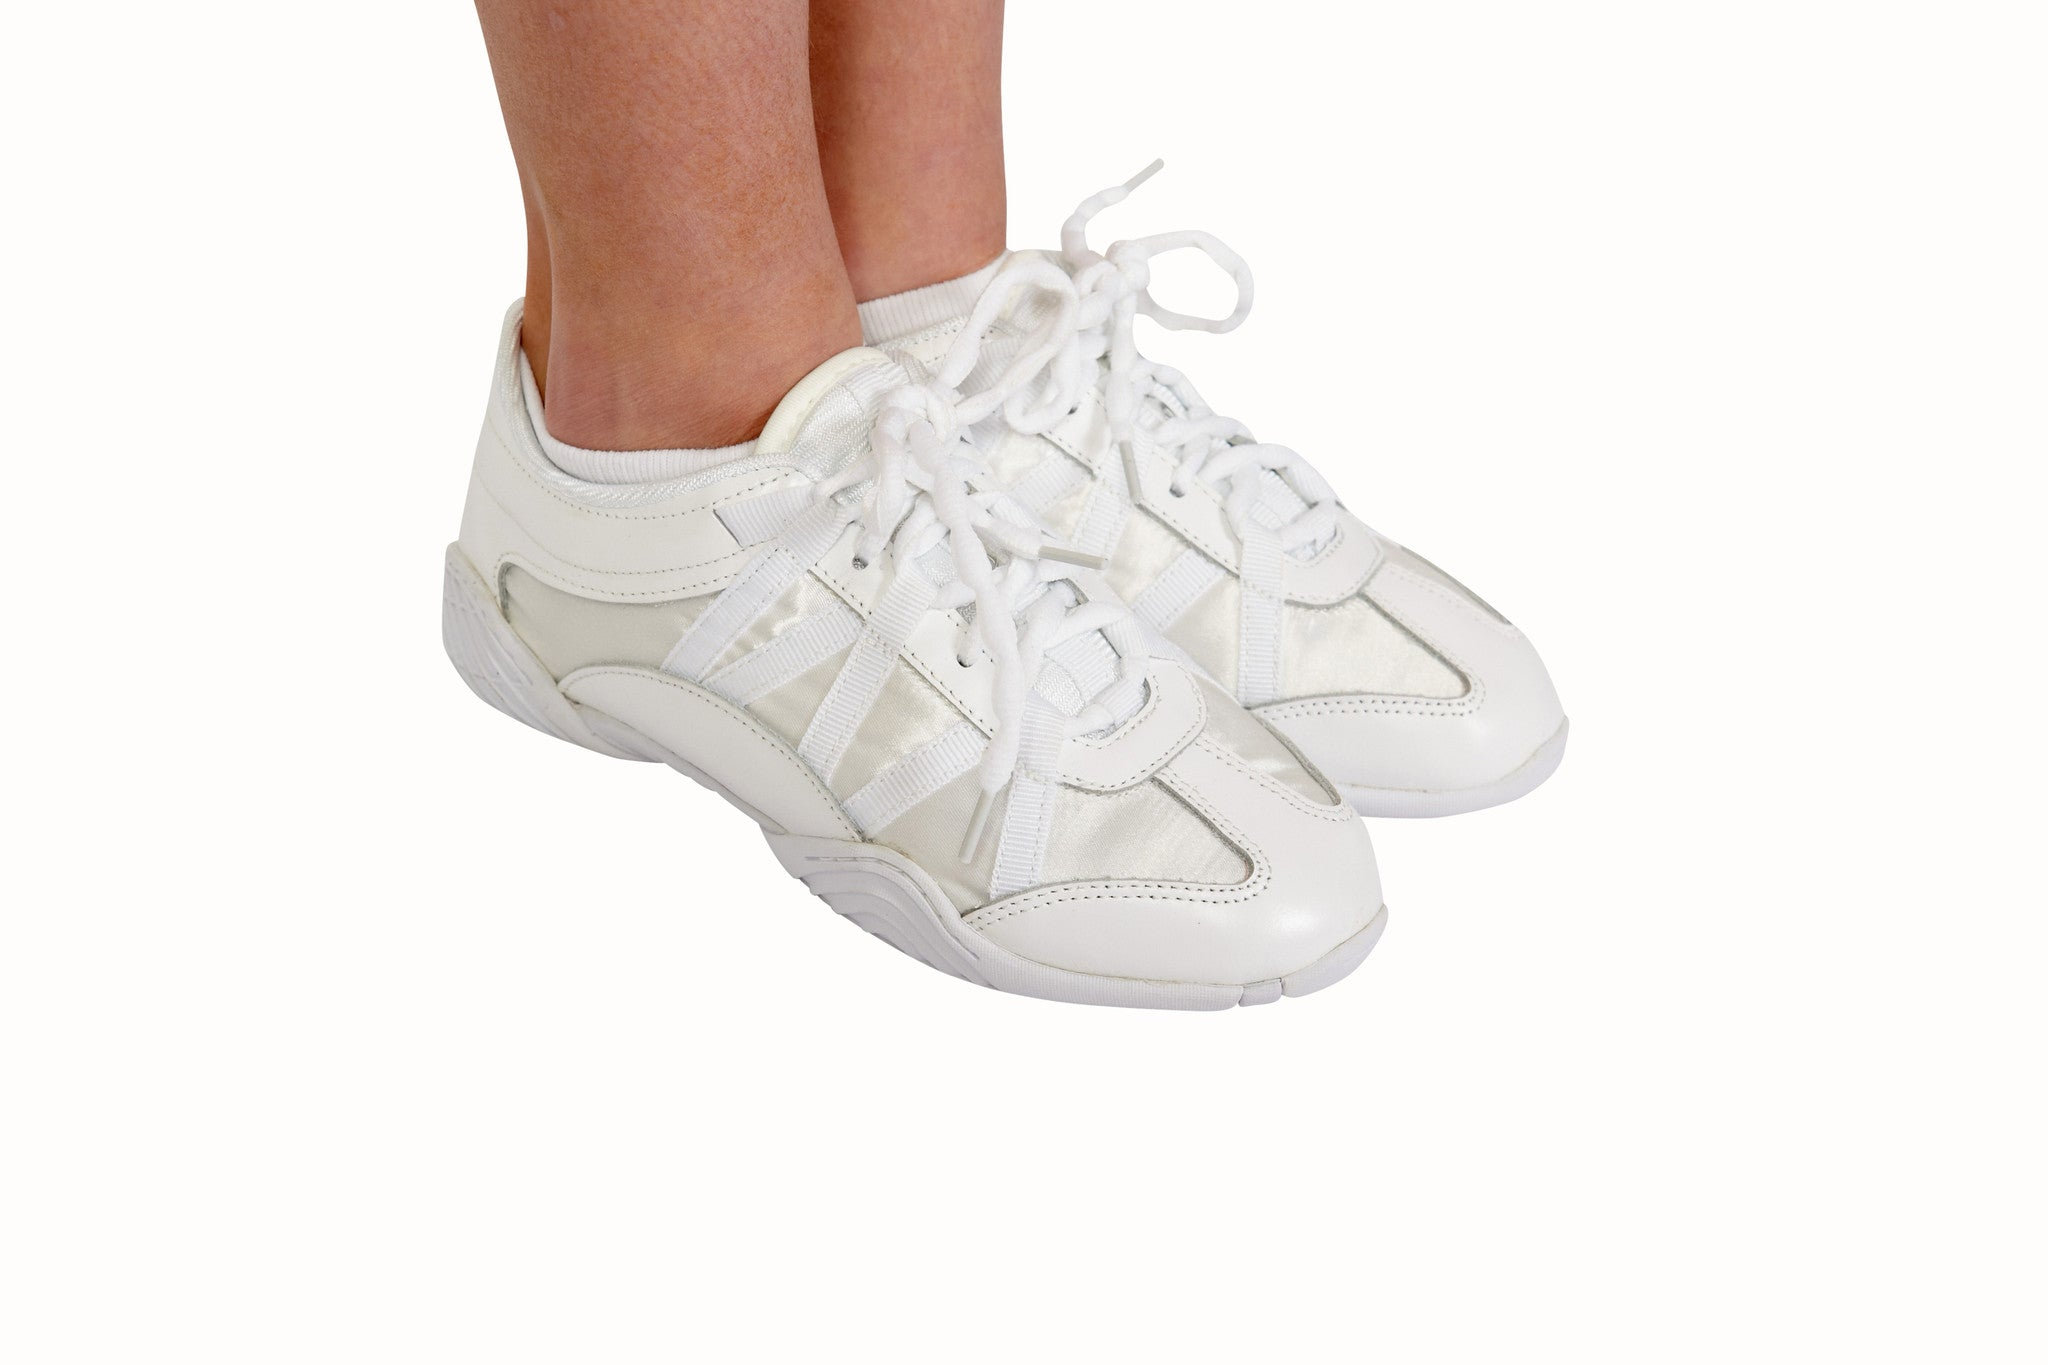 Girls' Cheerleading Shoes | Girls' Shoes For Cheerleading